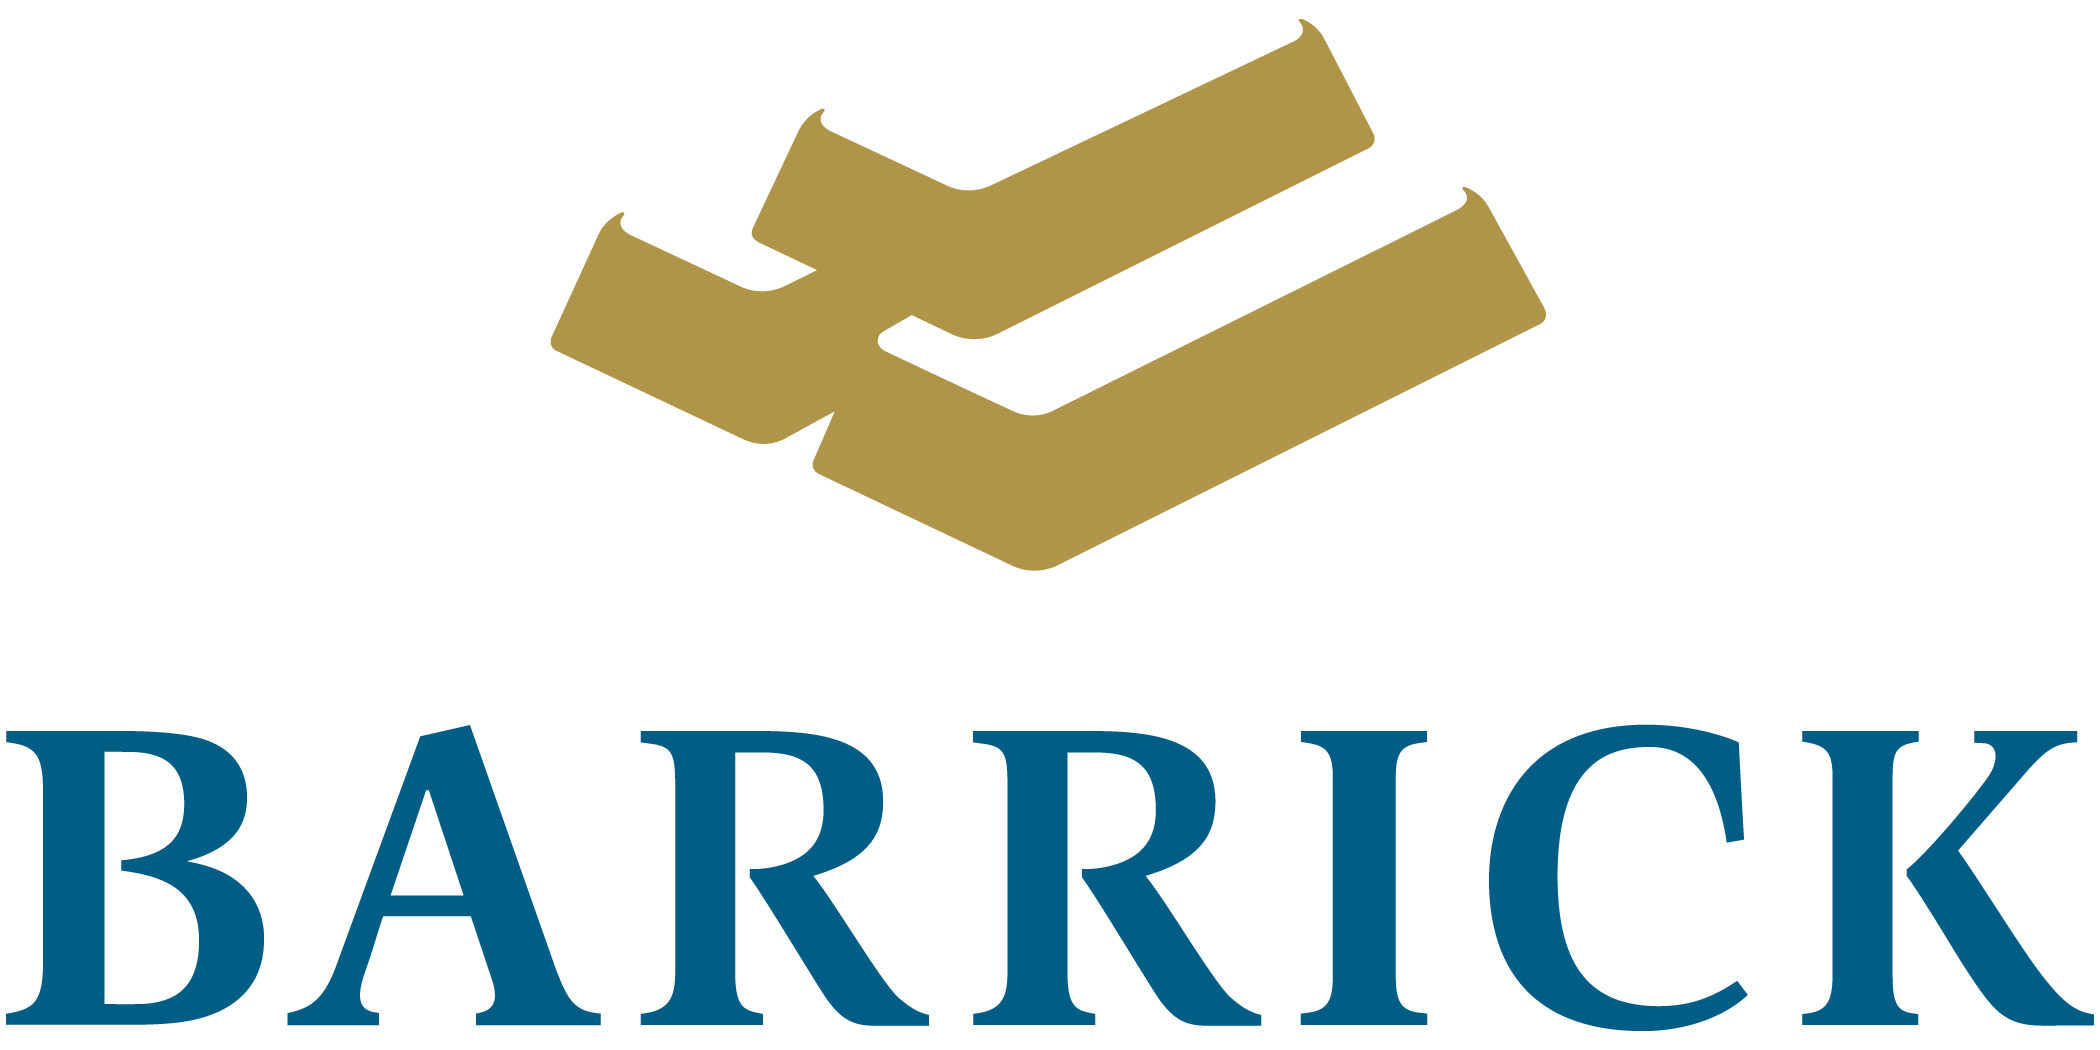 Barrick Gold Named to Dow Jones Sustainability World Index  Image.